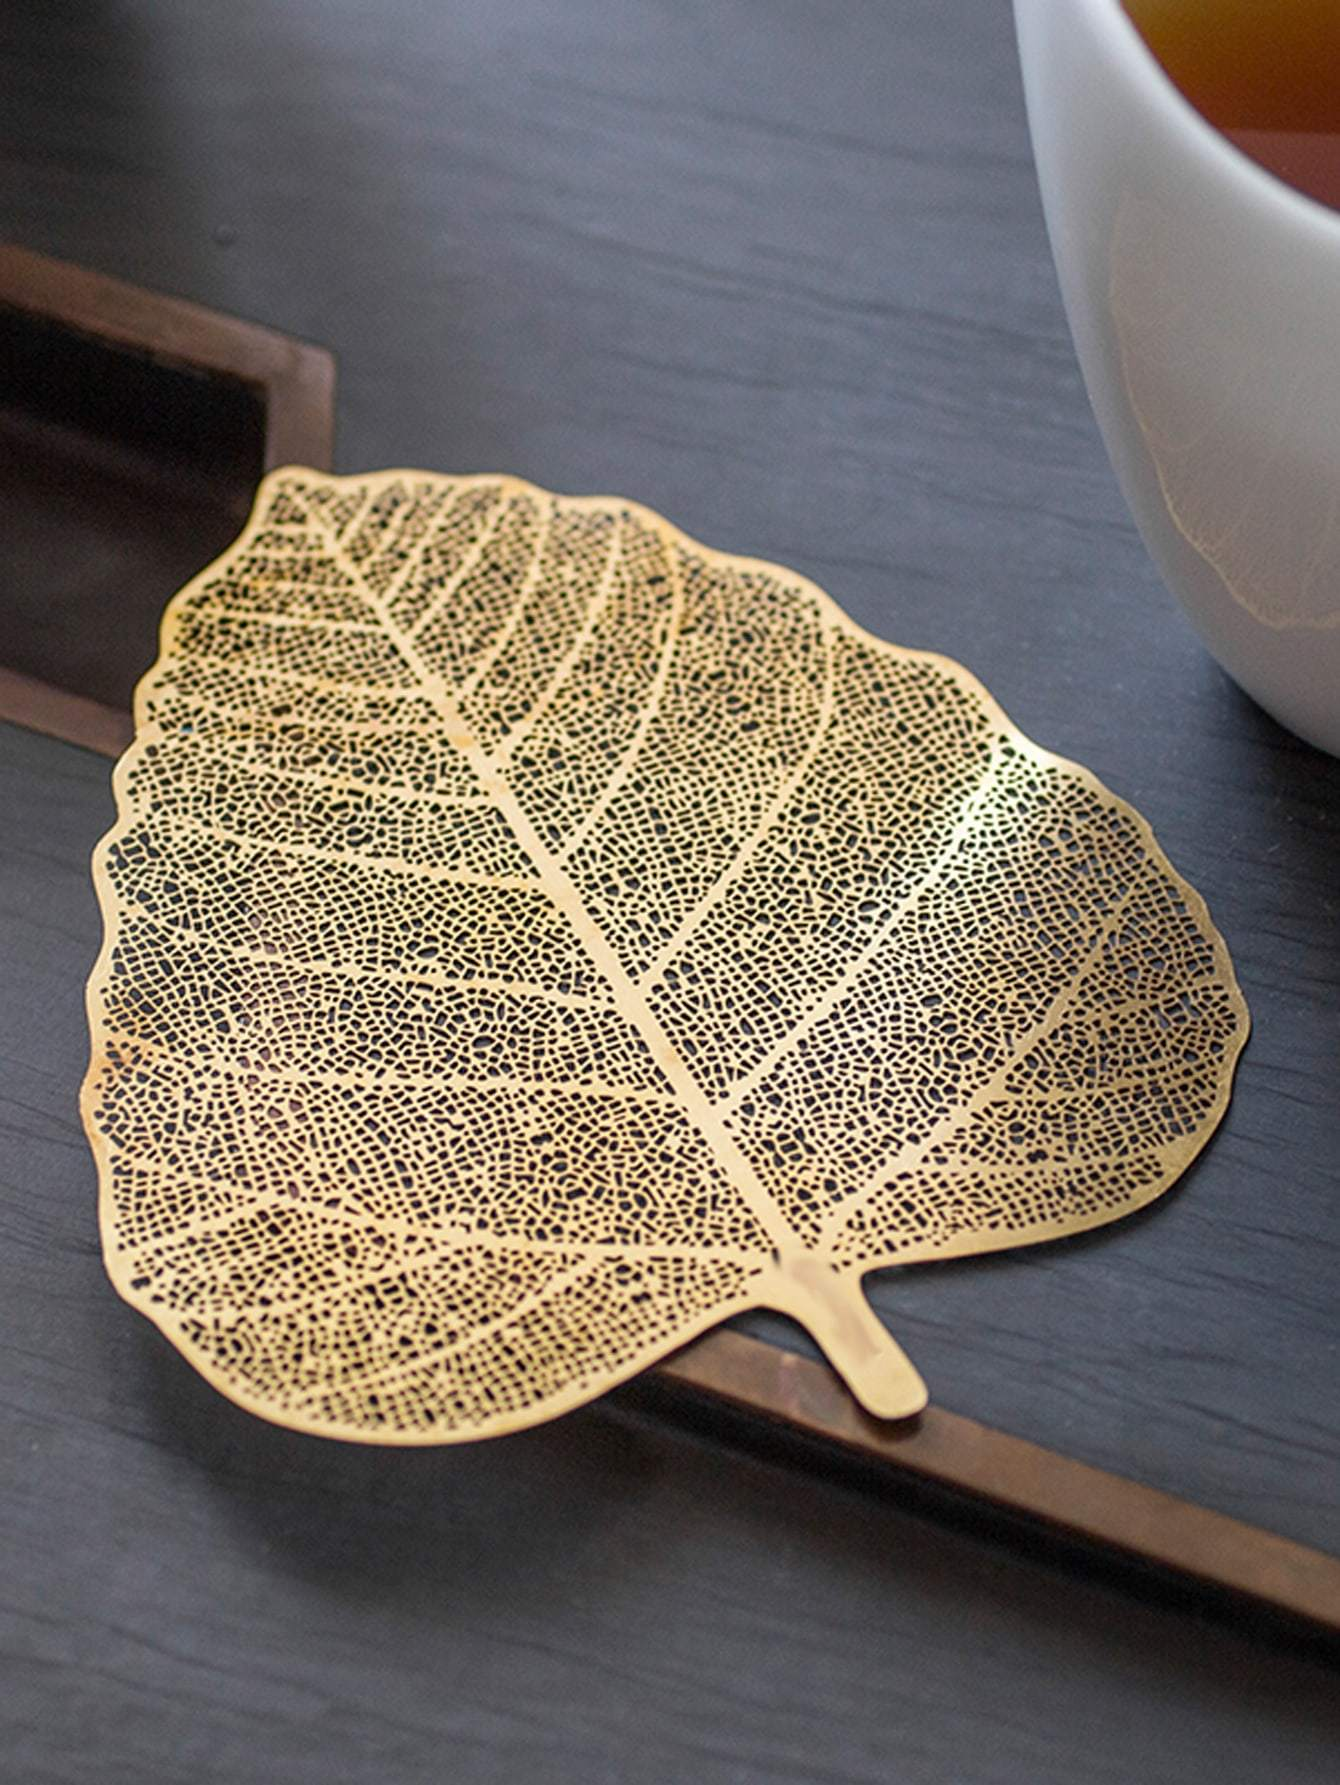 Leaf Shaped Tea Filter